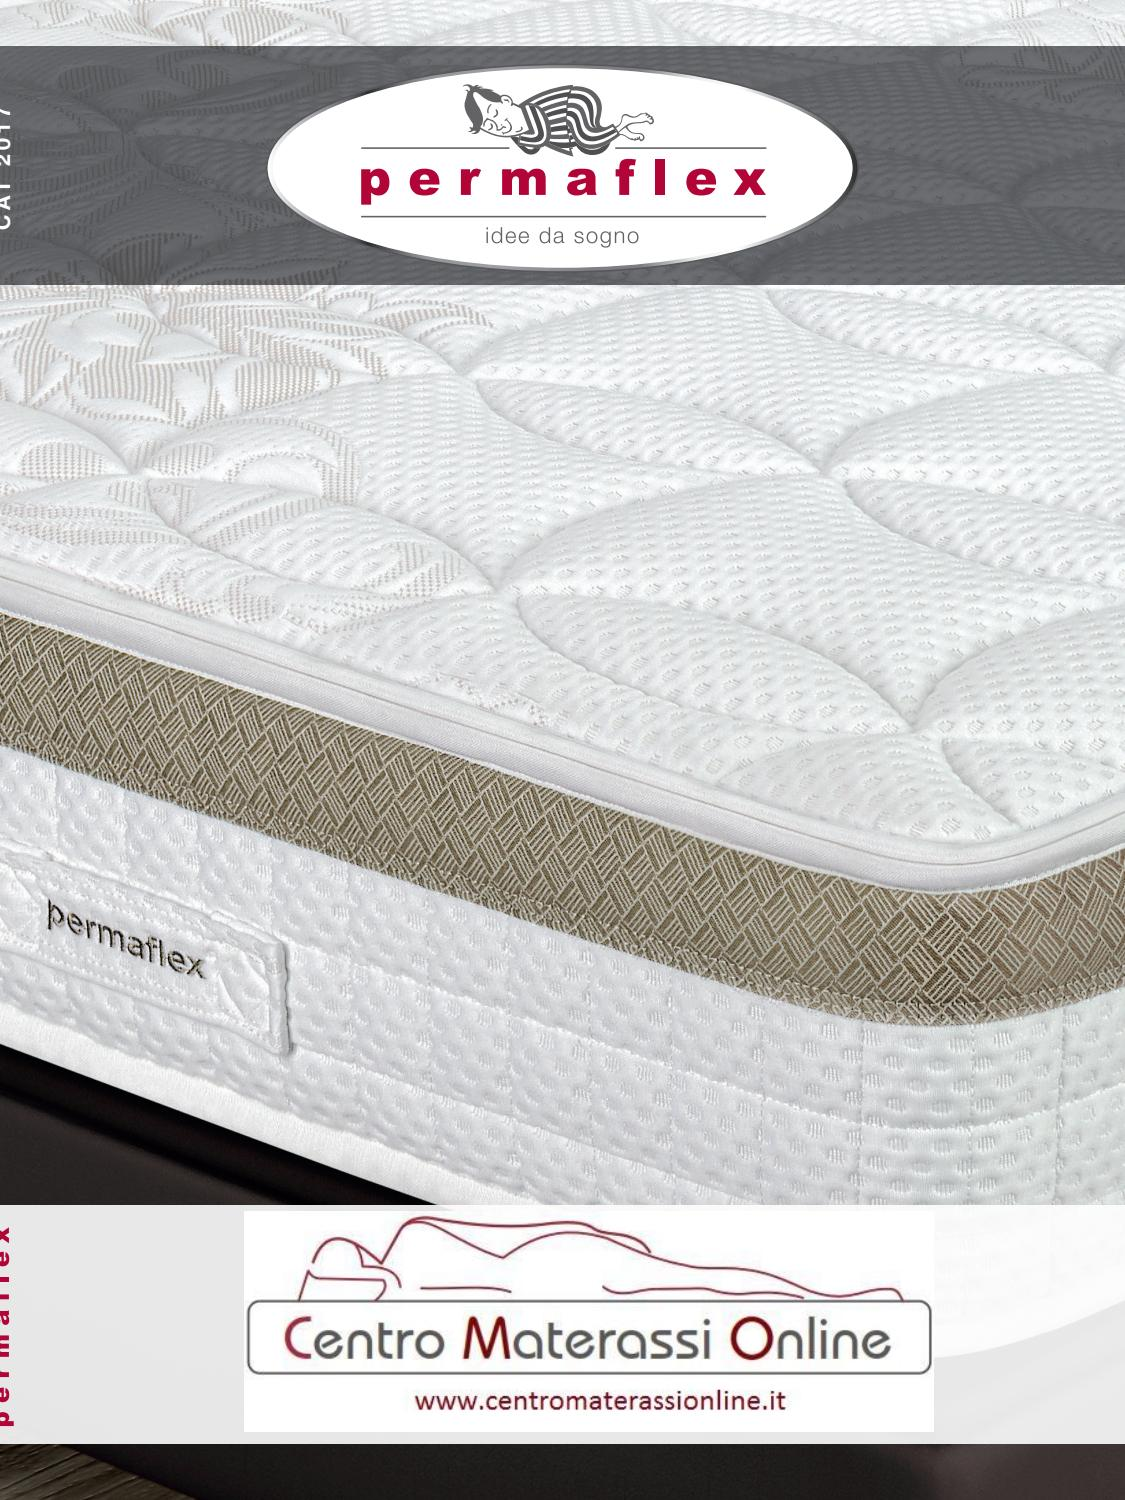 Materassi In Lattice Naturale Permaflex.Catalogo Permaflex Centromaterassionline Linea Lattice By Mobilpro